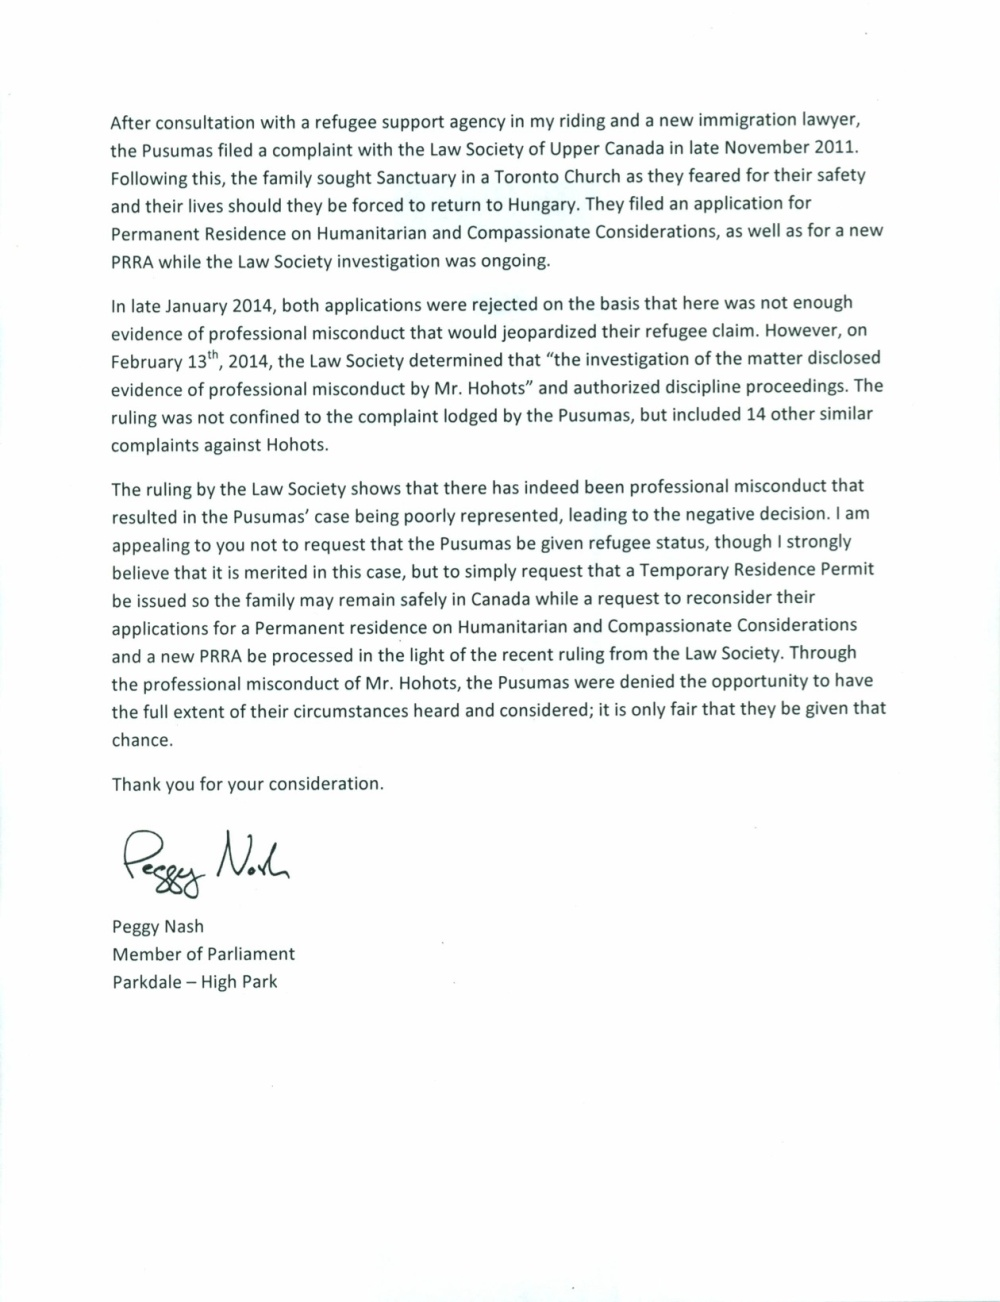 2 Final Nash Letter to Minister Alexander - Pusuma Family